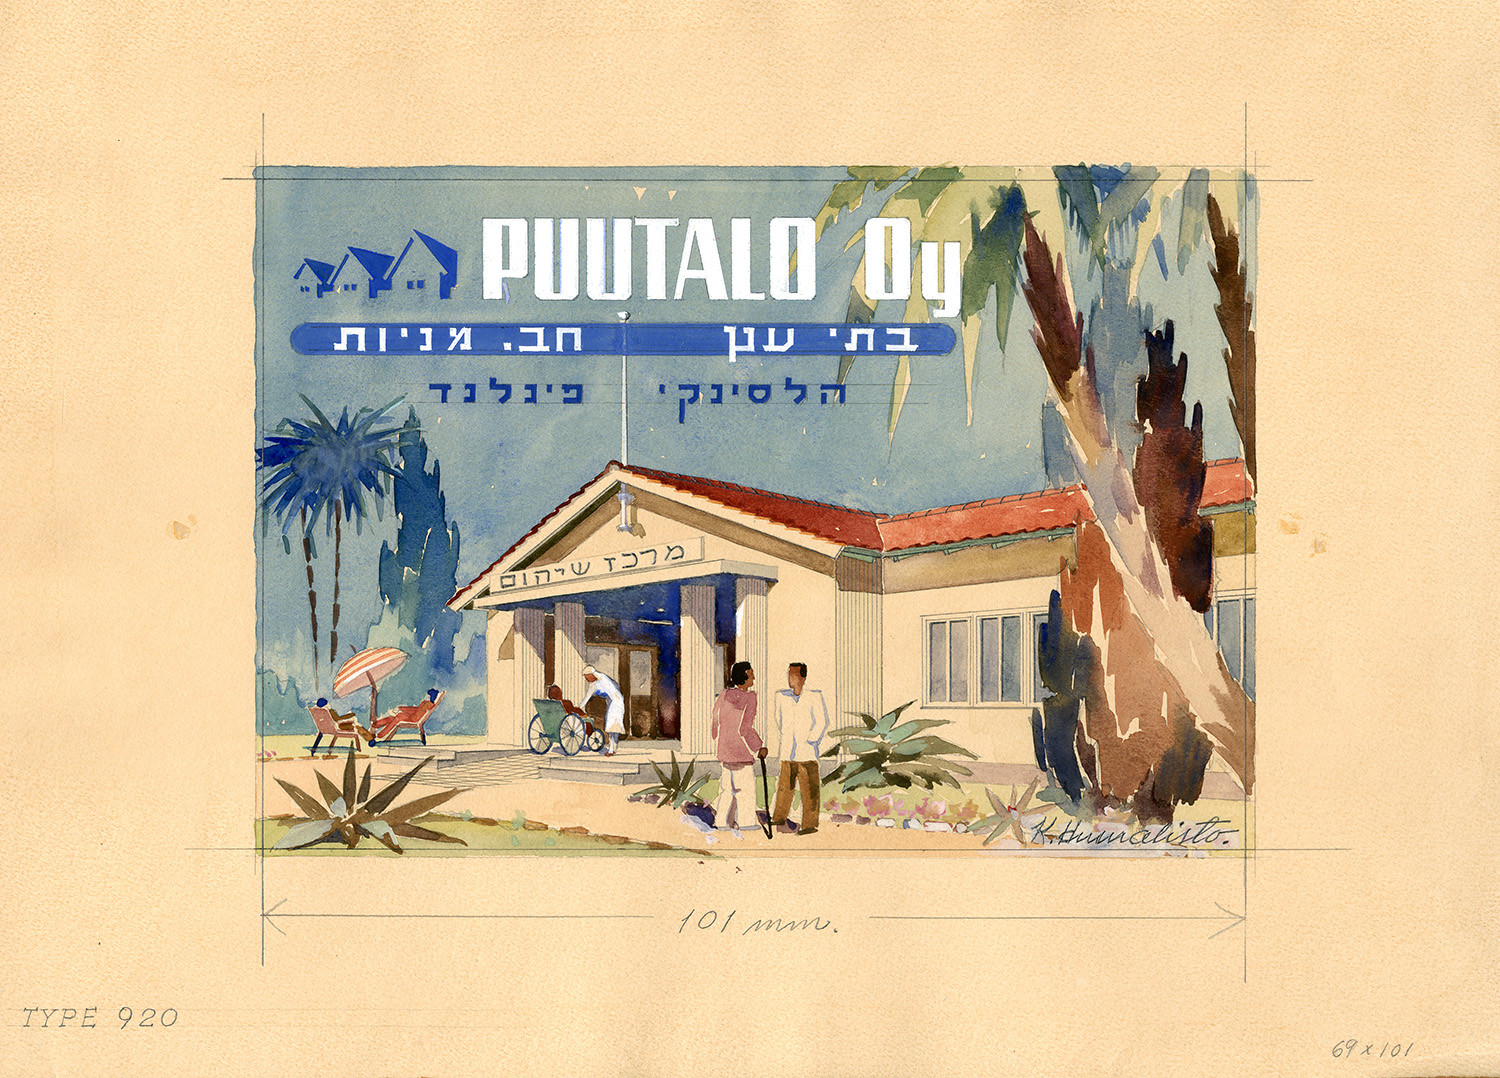 A lively advertisement painted in watercolors of Puutalo Oy's hospital in Israel. There are palm trees and people walking or resting under a parasol in the hospital yard.